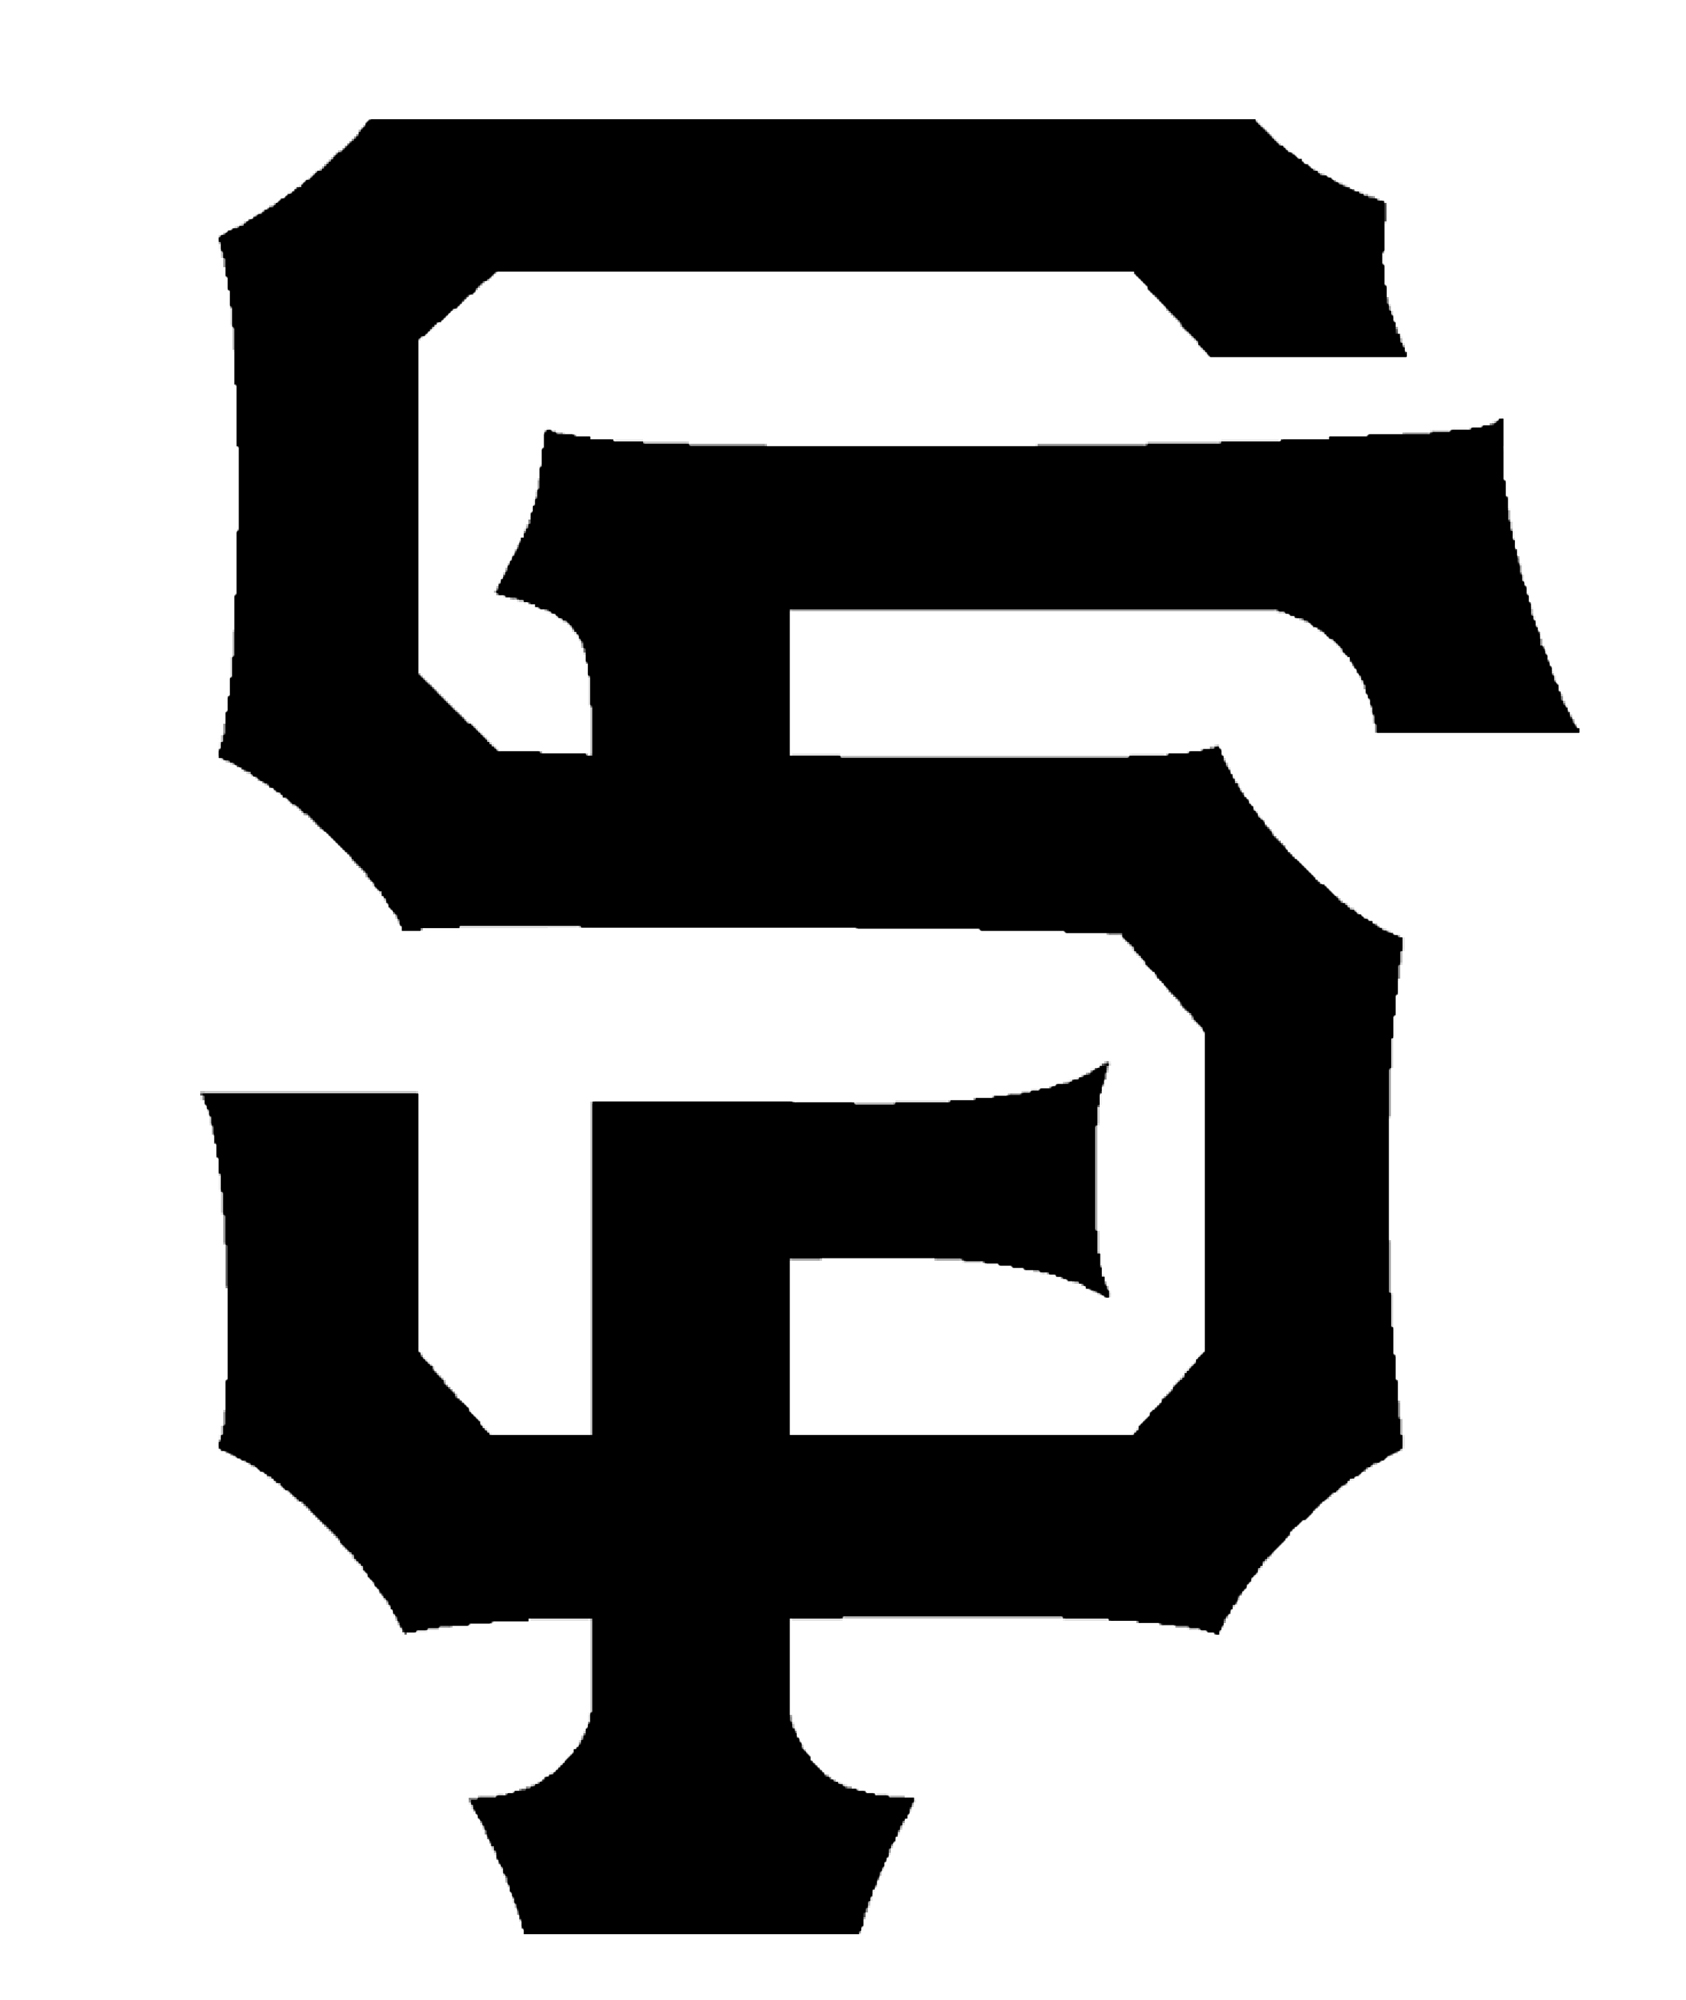 Clipart black and white giants logo banner royalty free library San Francisco Giants Stencils | Stencil Revolution banner royalty free library